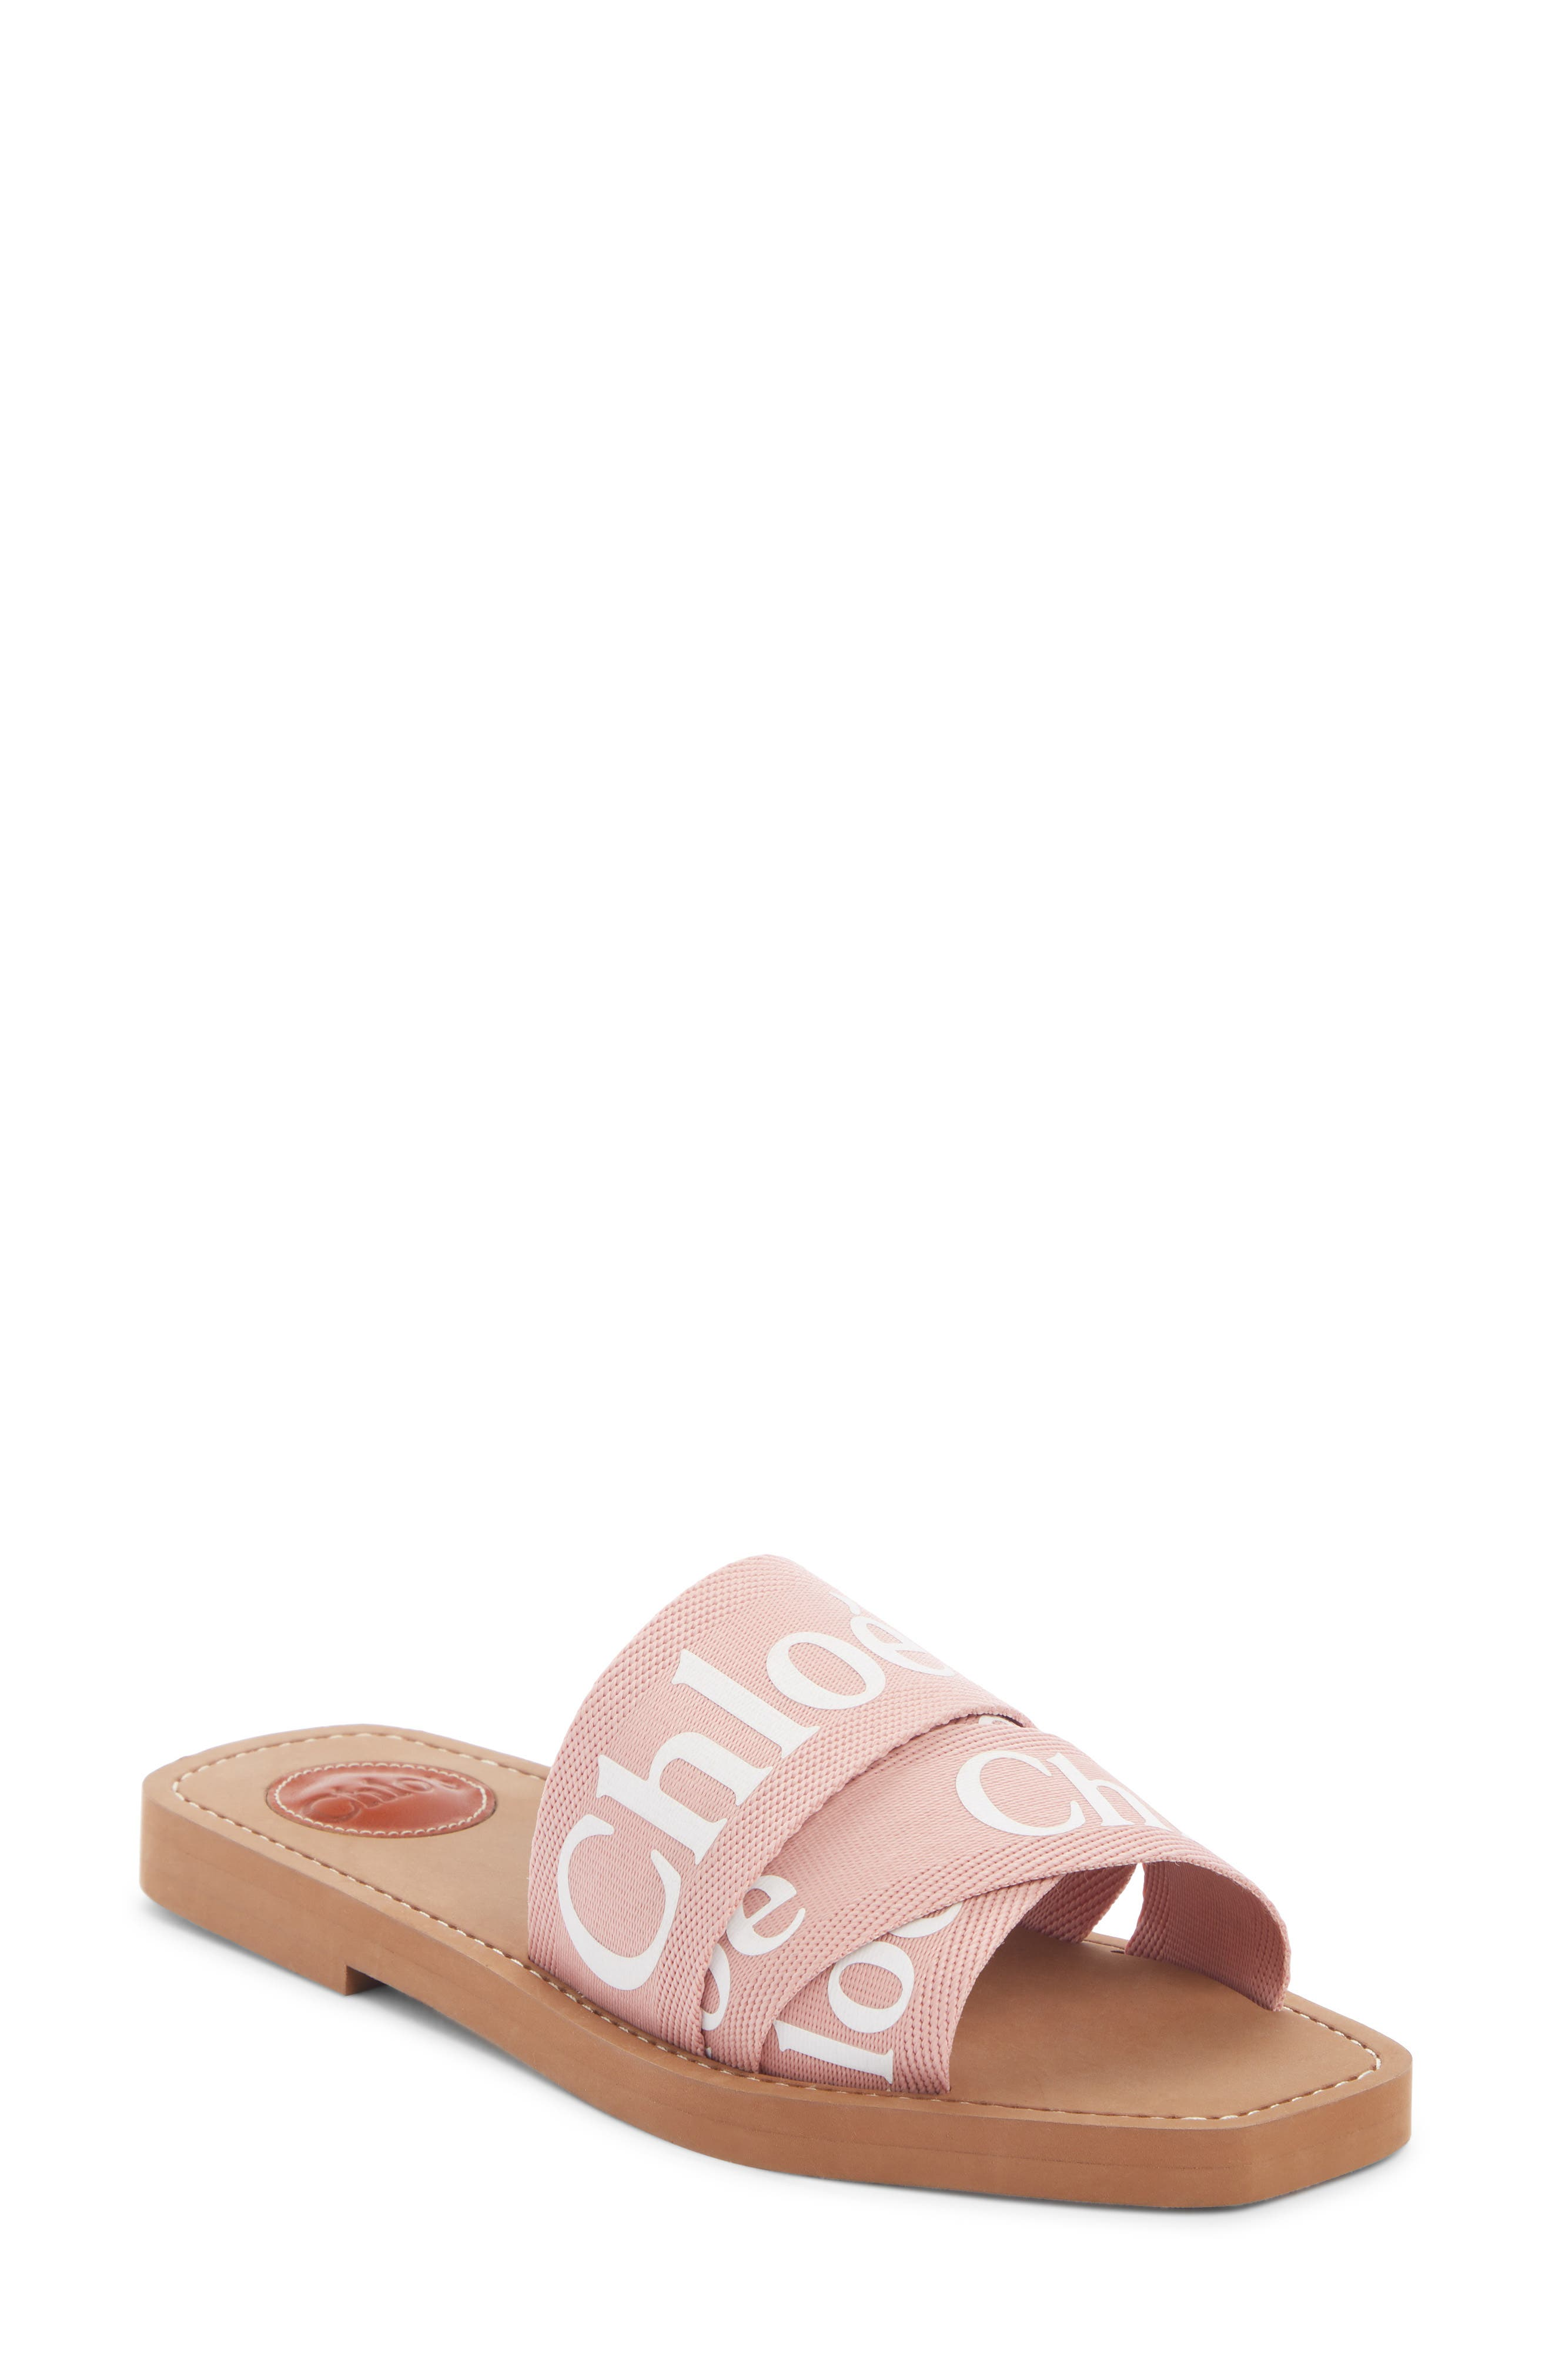 Inspired by lacy pieces in the ready-to-wear collection, this chic slide features delicate woven bands printed with bold logo letters. Style Name: Chloe Logo Slide Sandal (Women). Style Number: 5781136. Available in stores.